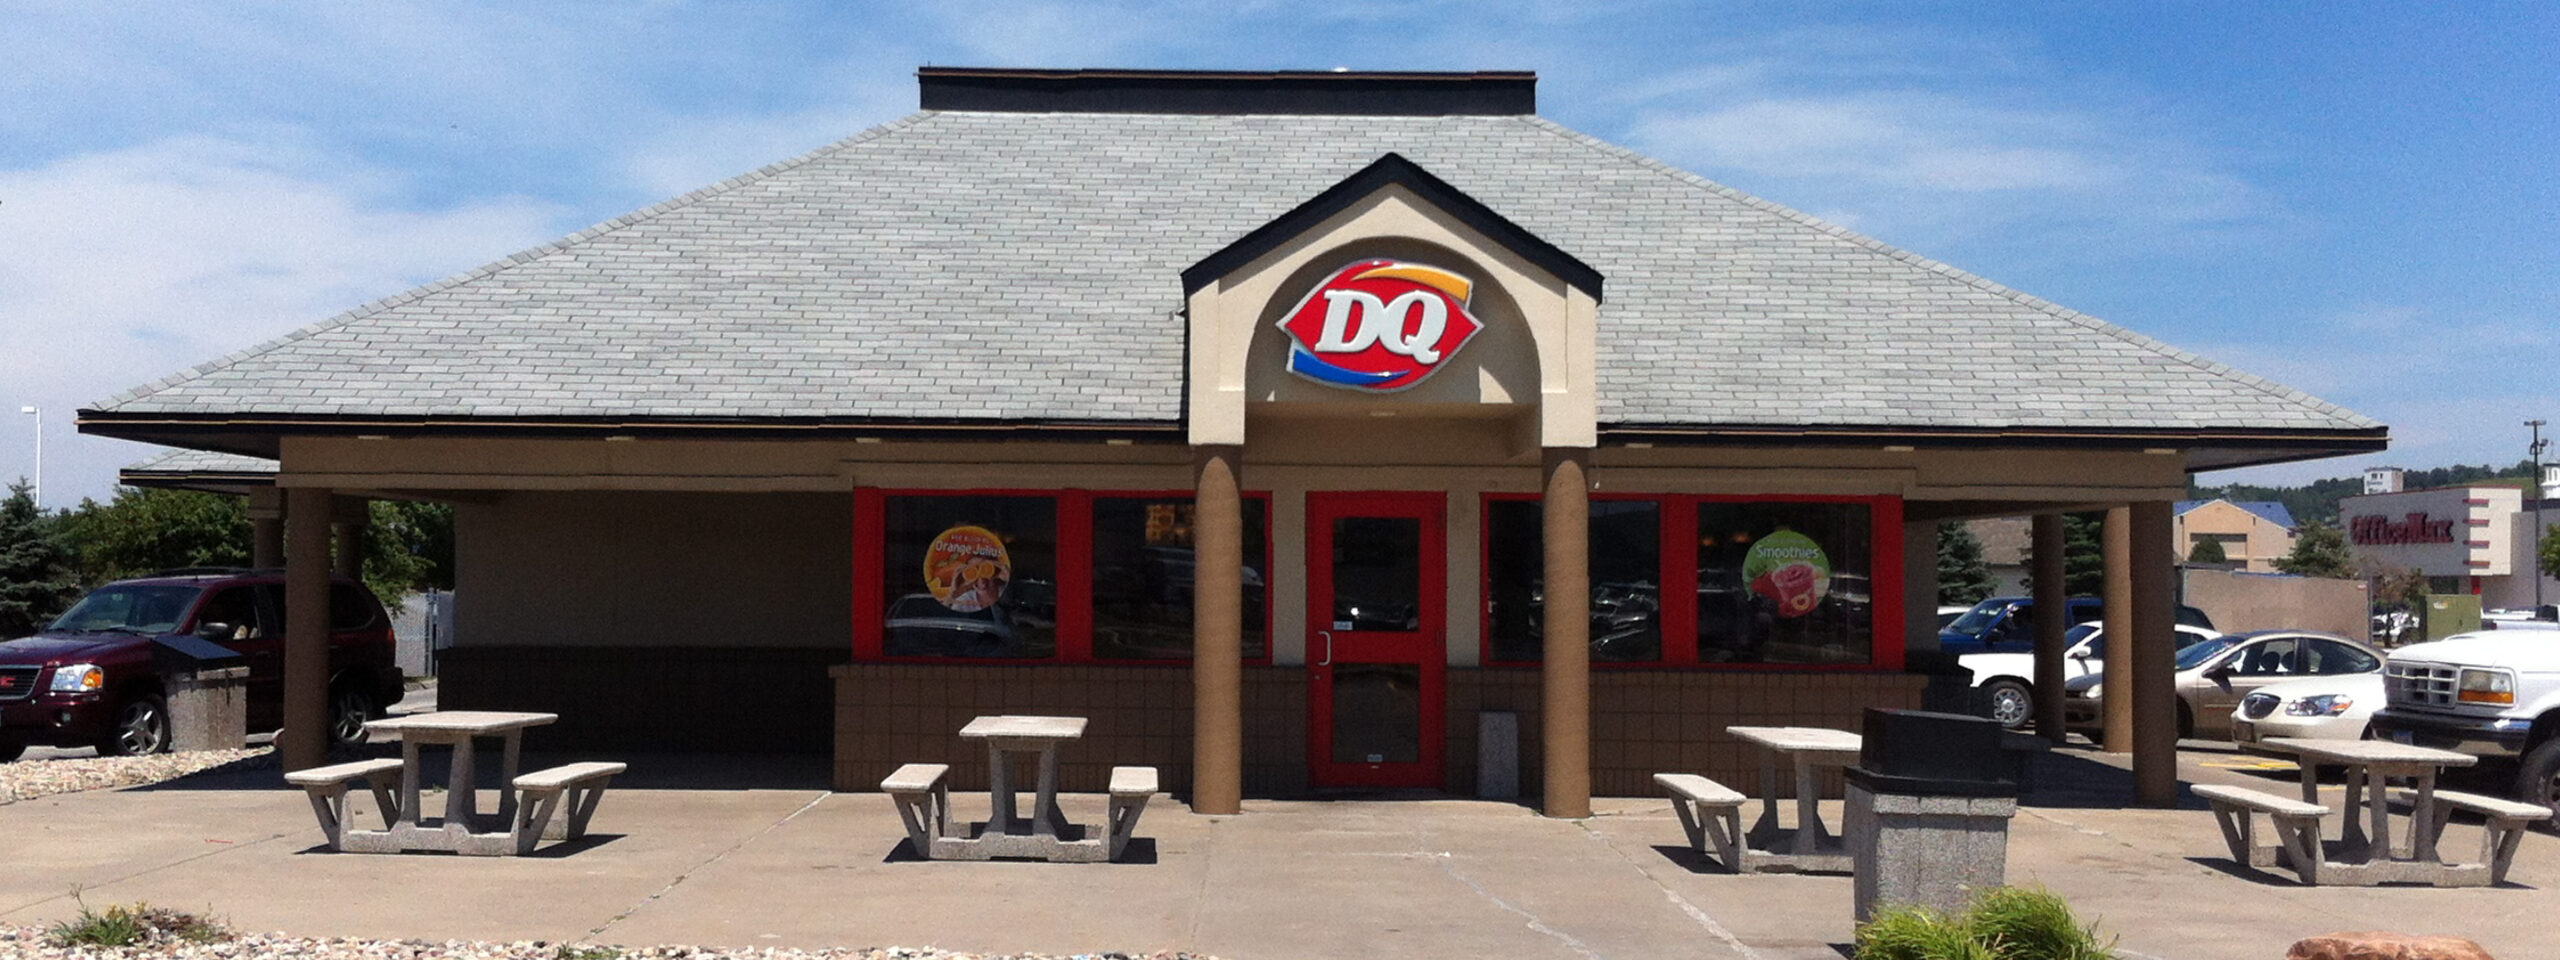 Council Bluffs, IA Fourteen Foods DQ Restaurant